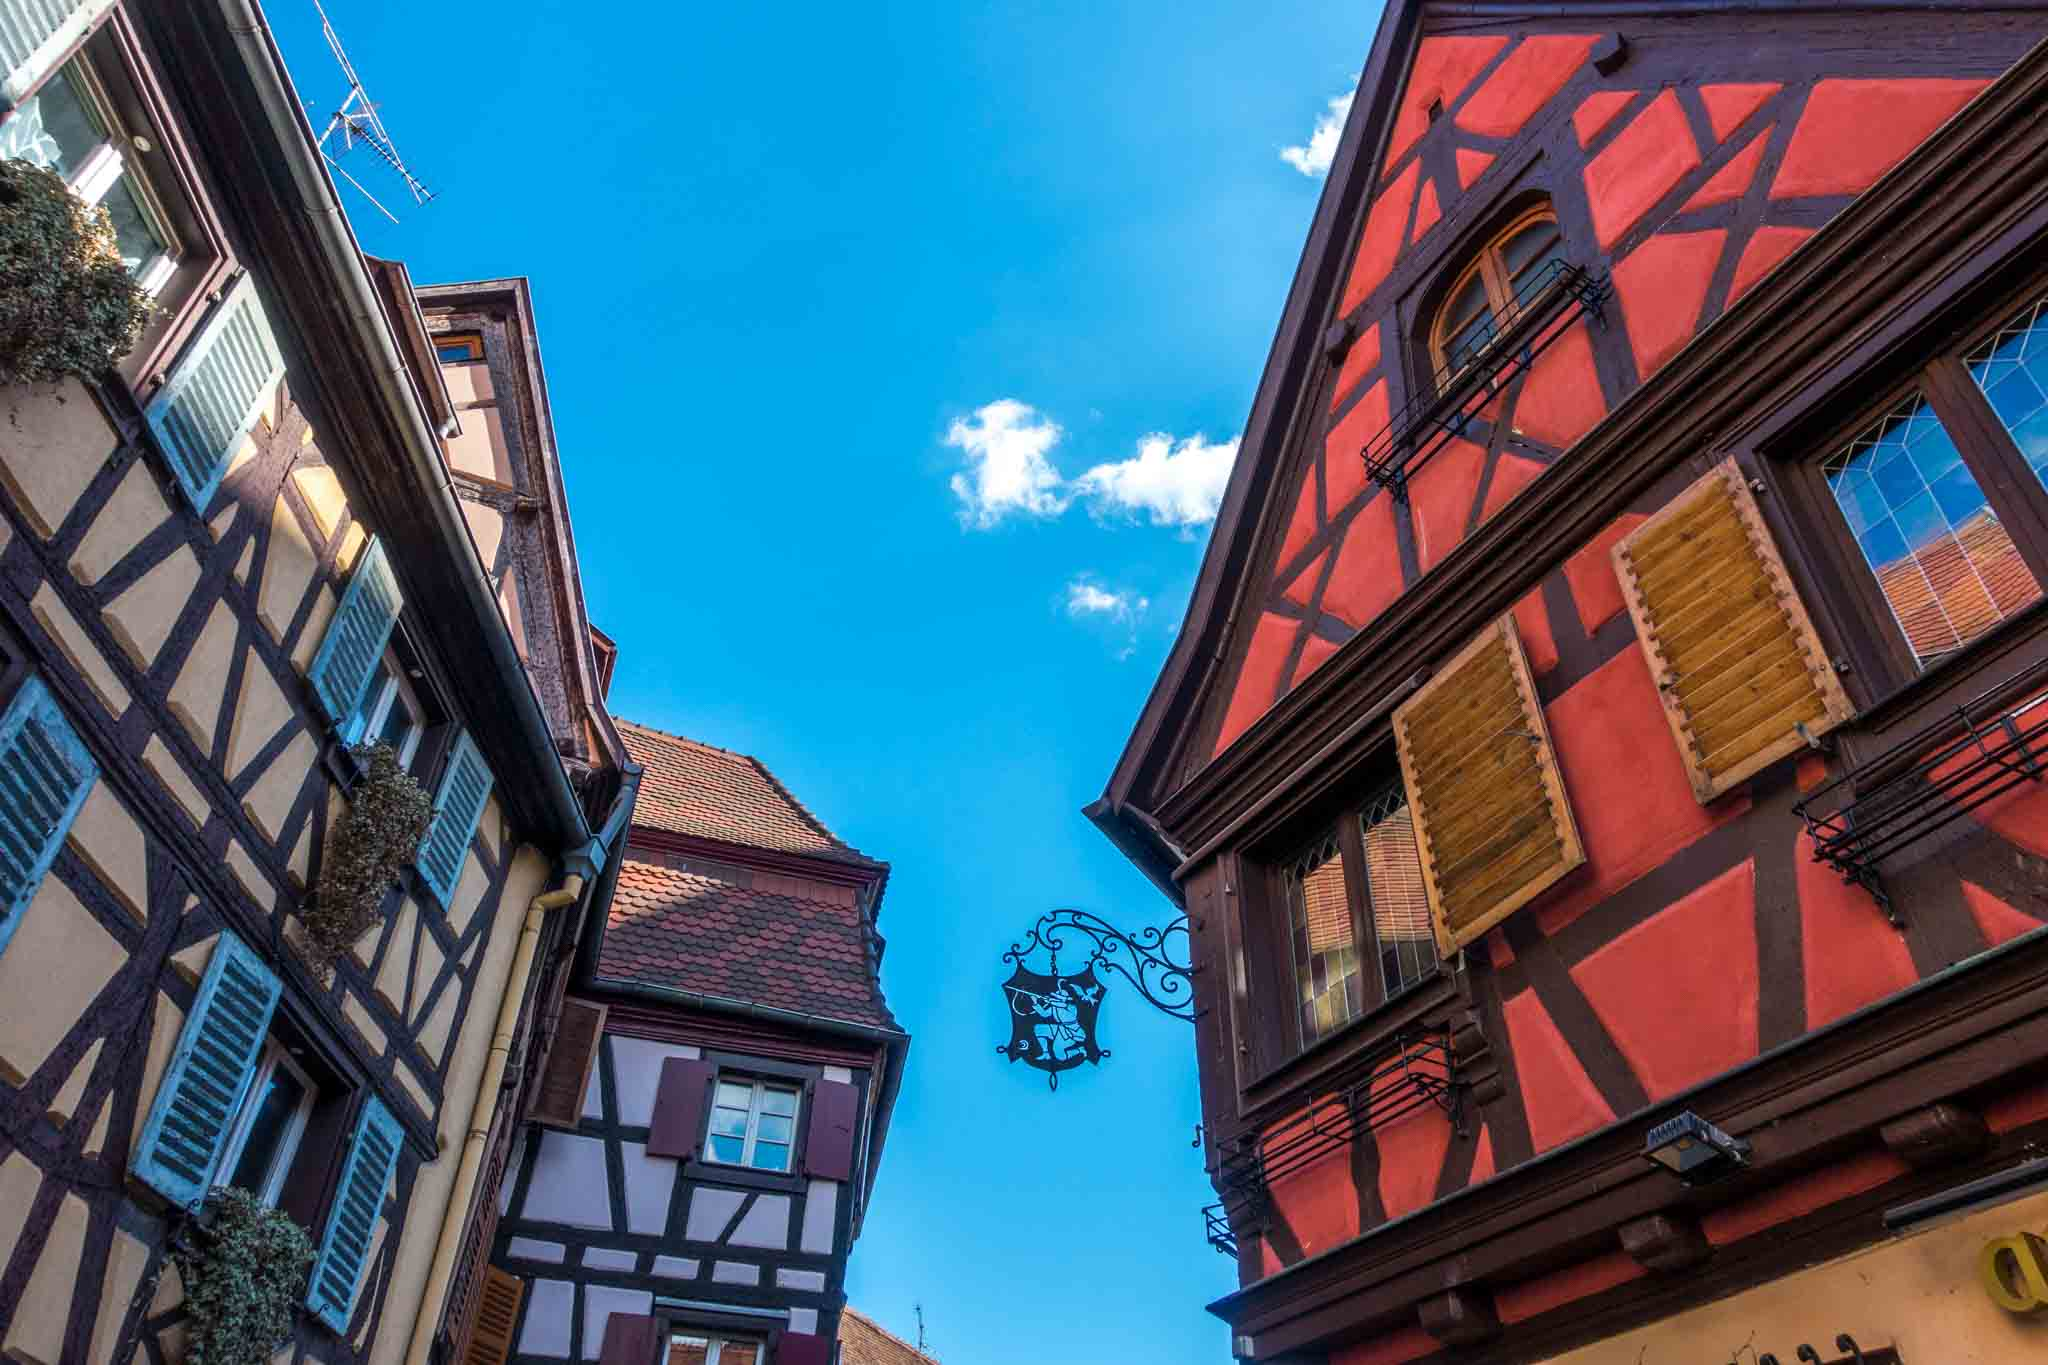 Half-timber buildings of Colmar, France